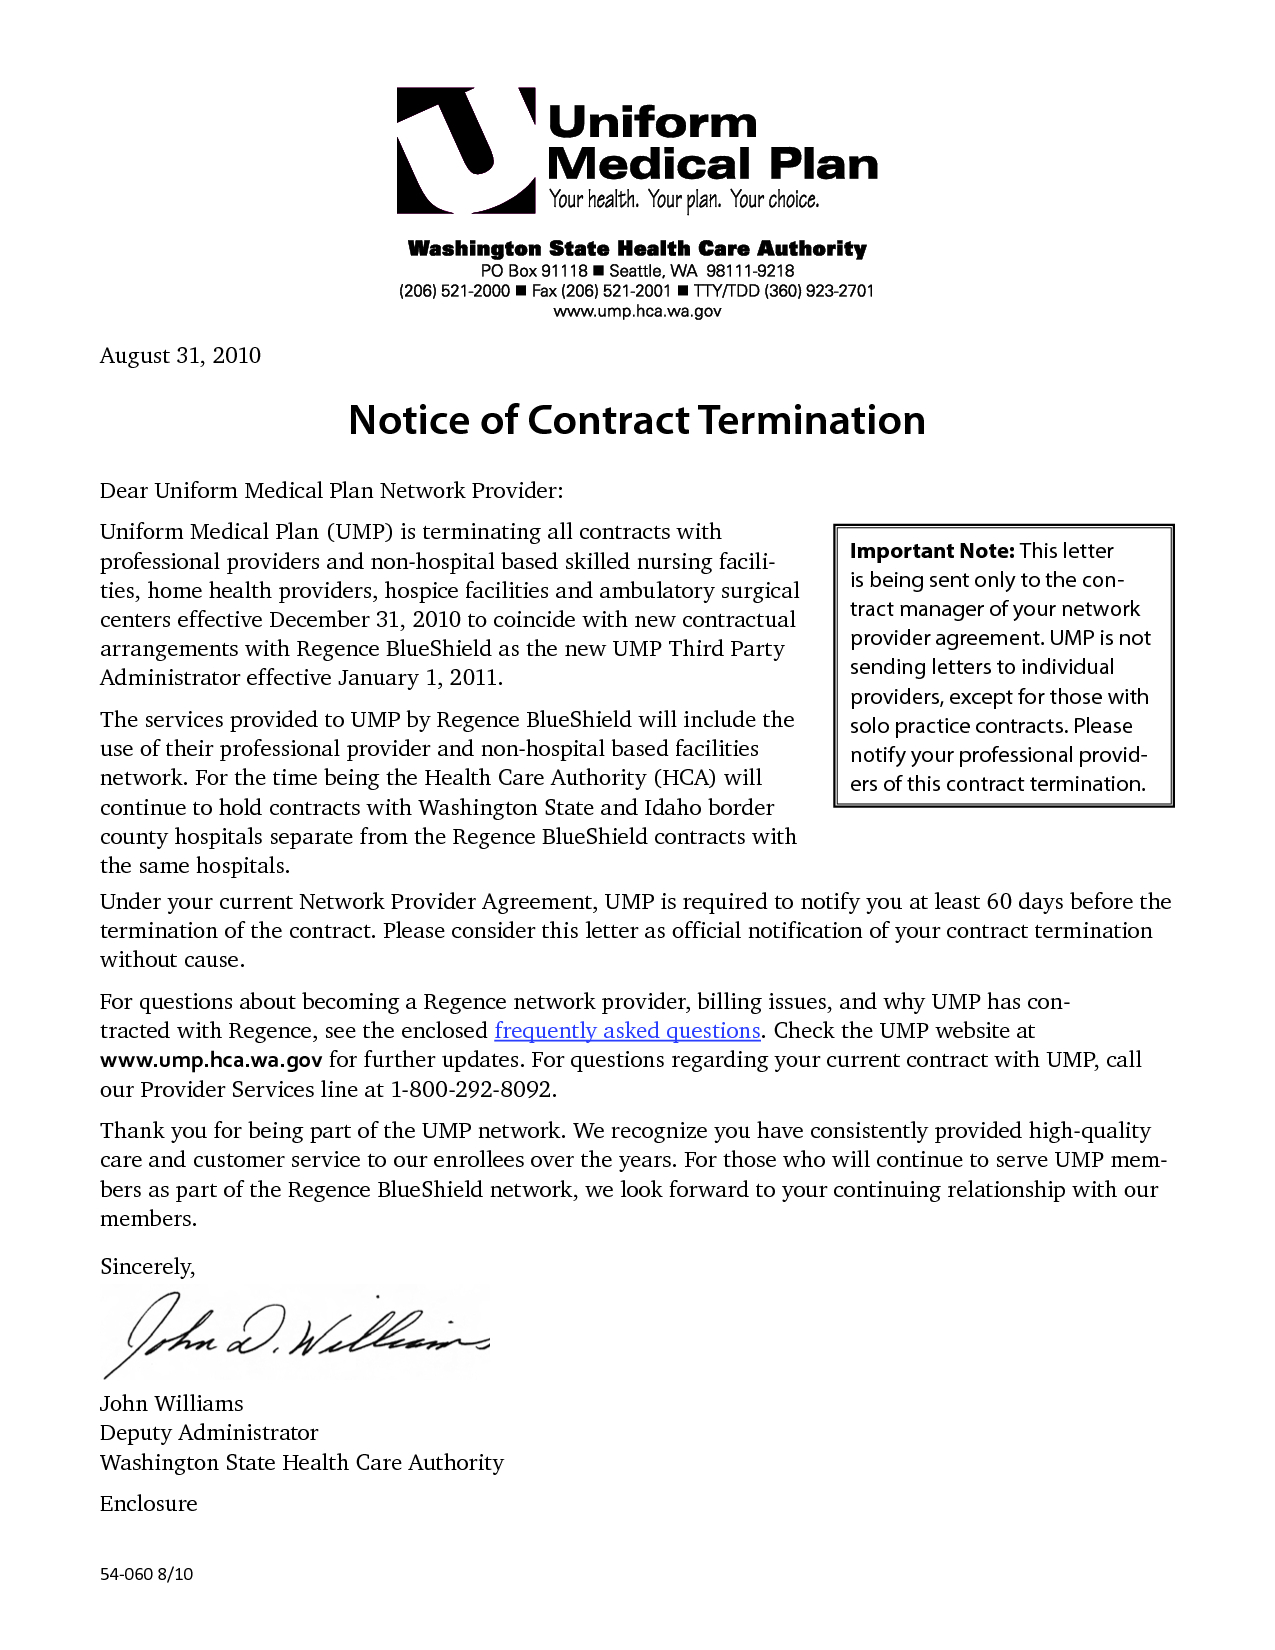 19 Business Contract Termination Letter Template Examples Letter